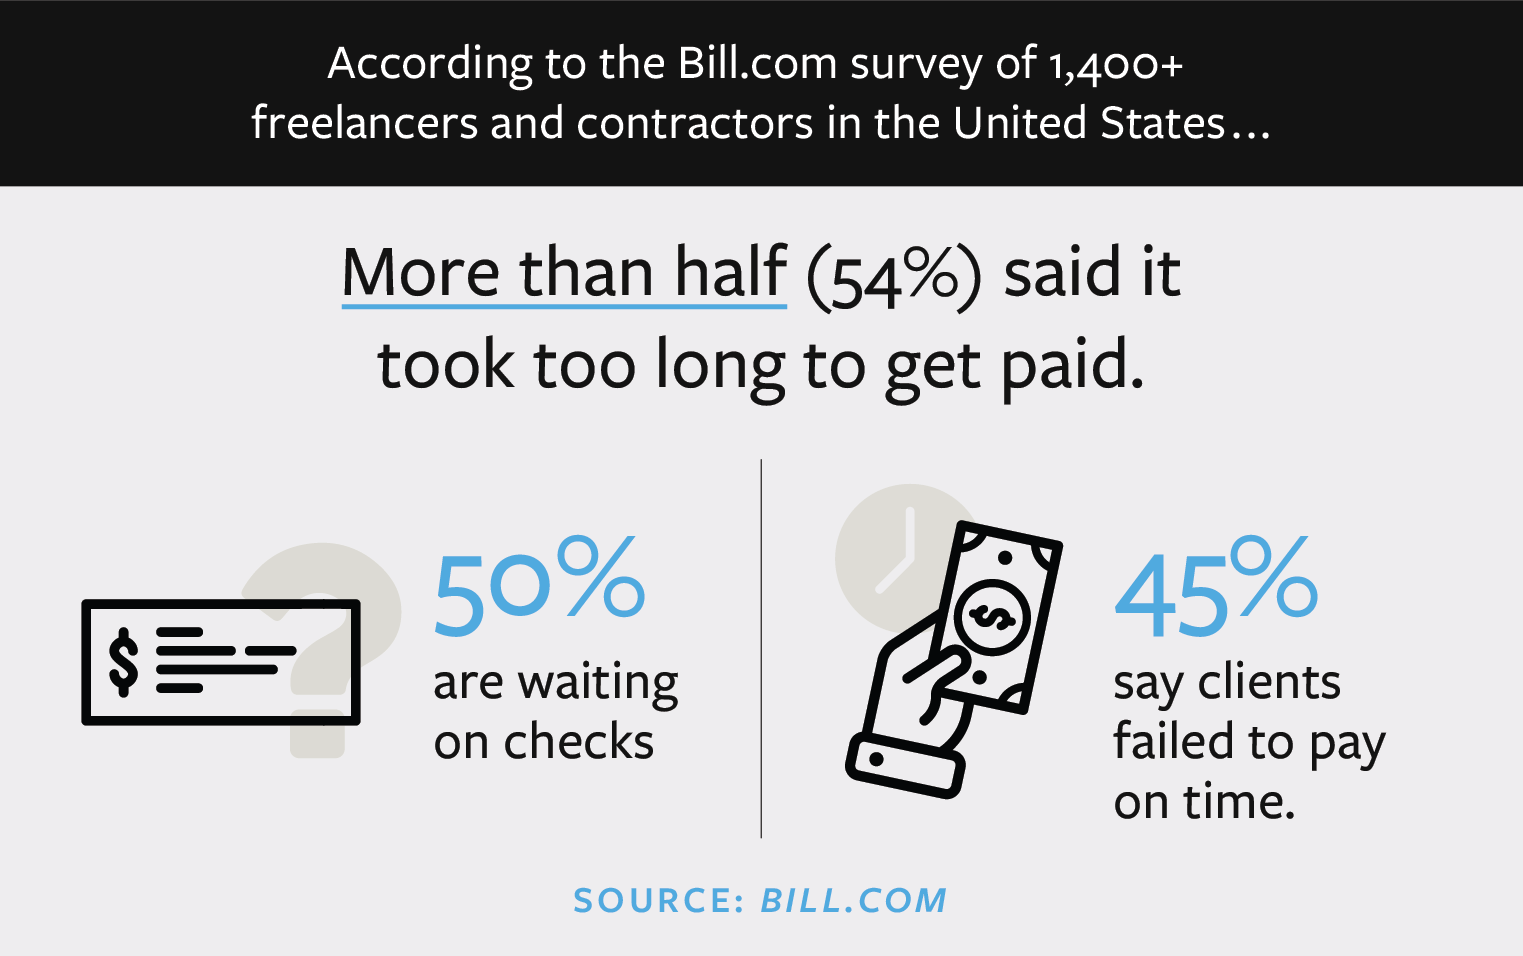 Statistics from Bill.com survey regarding late payments to freelancers